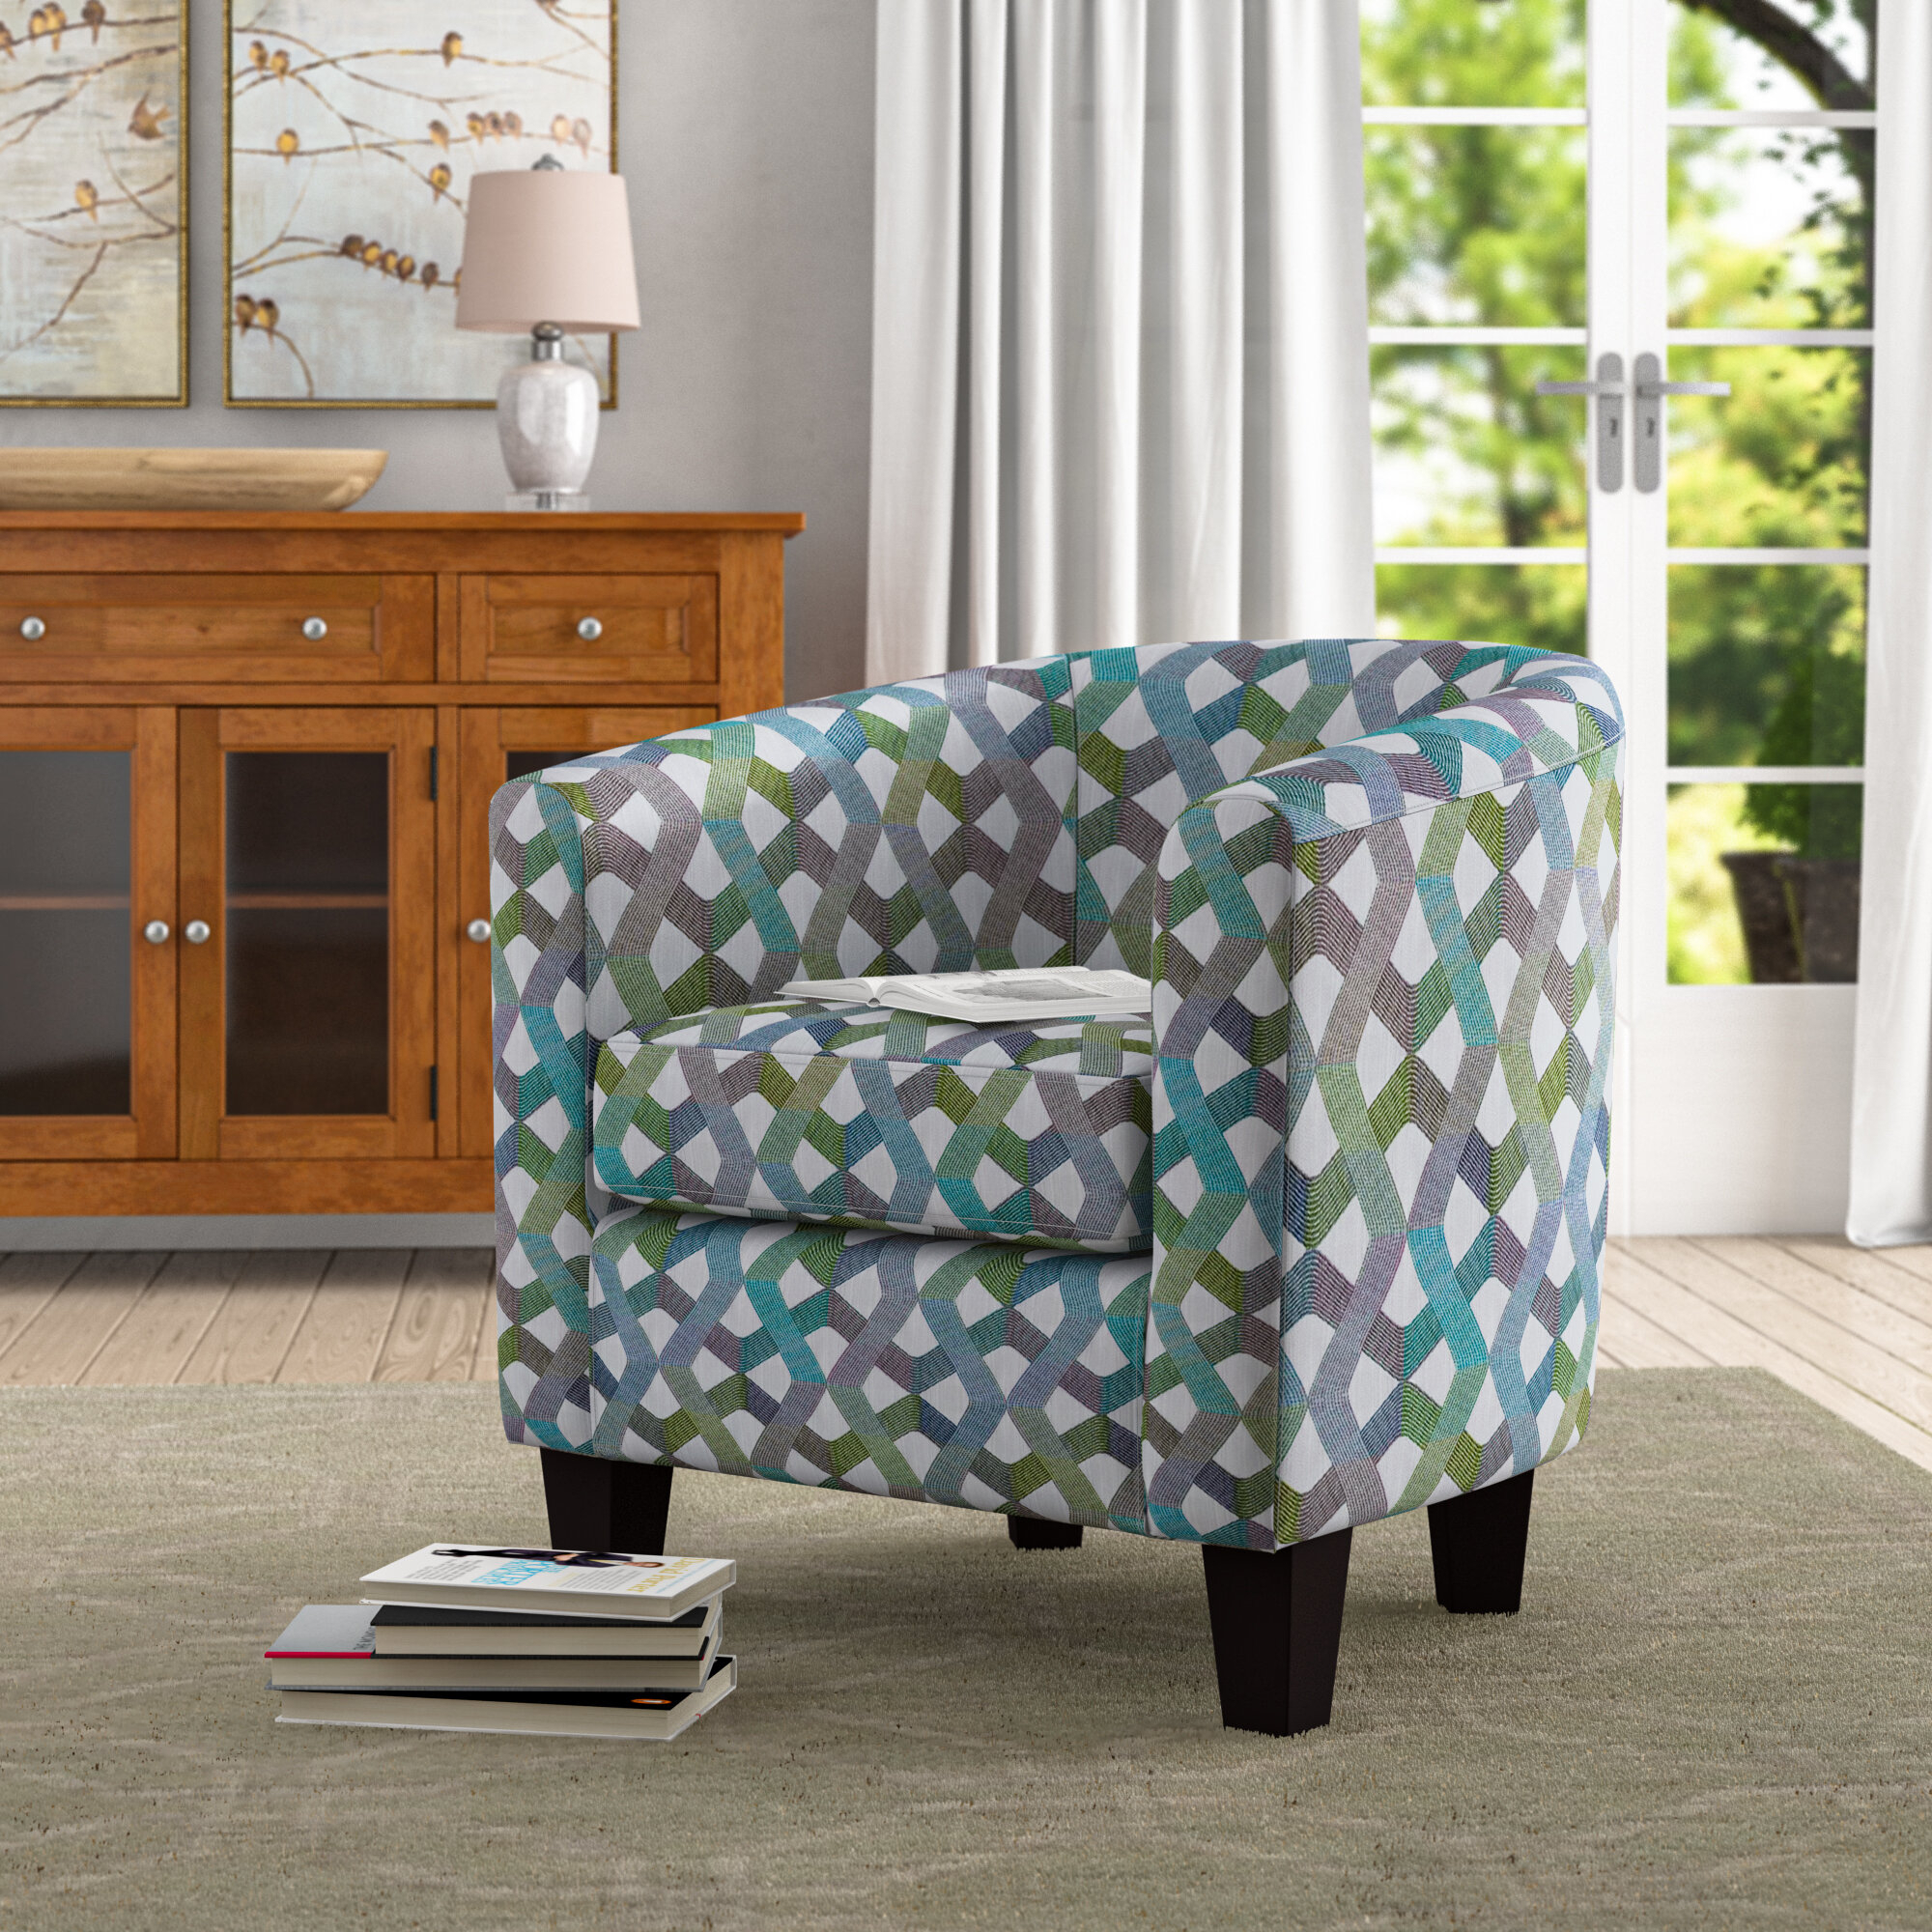 Ebern Designs Accent Chairs You'Ll Love In 2021 | Wayfair For Akimitsu Barrel Chair And Ottoman Sets (View 8 of 15)